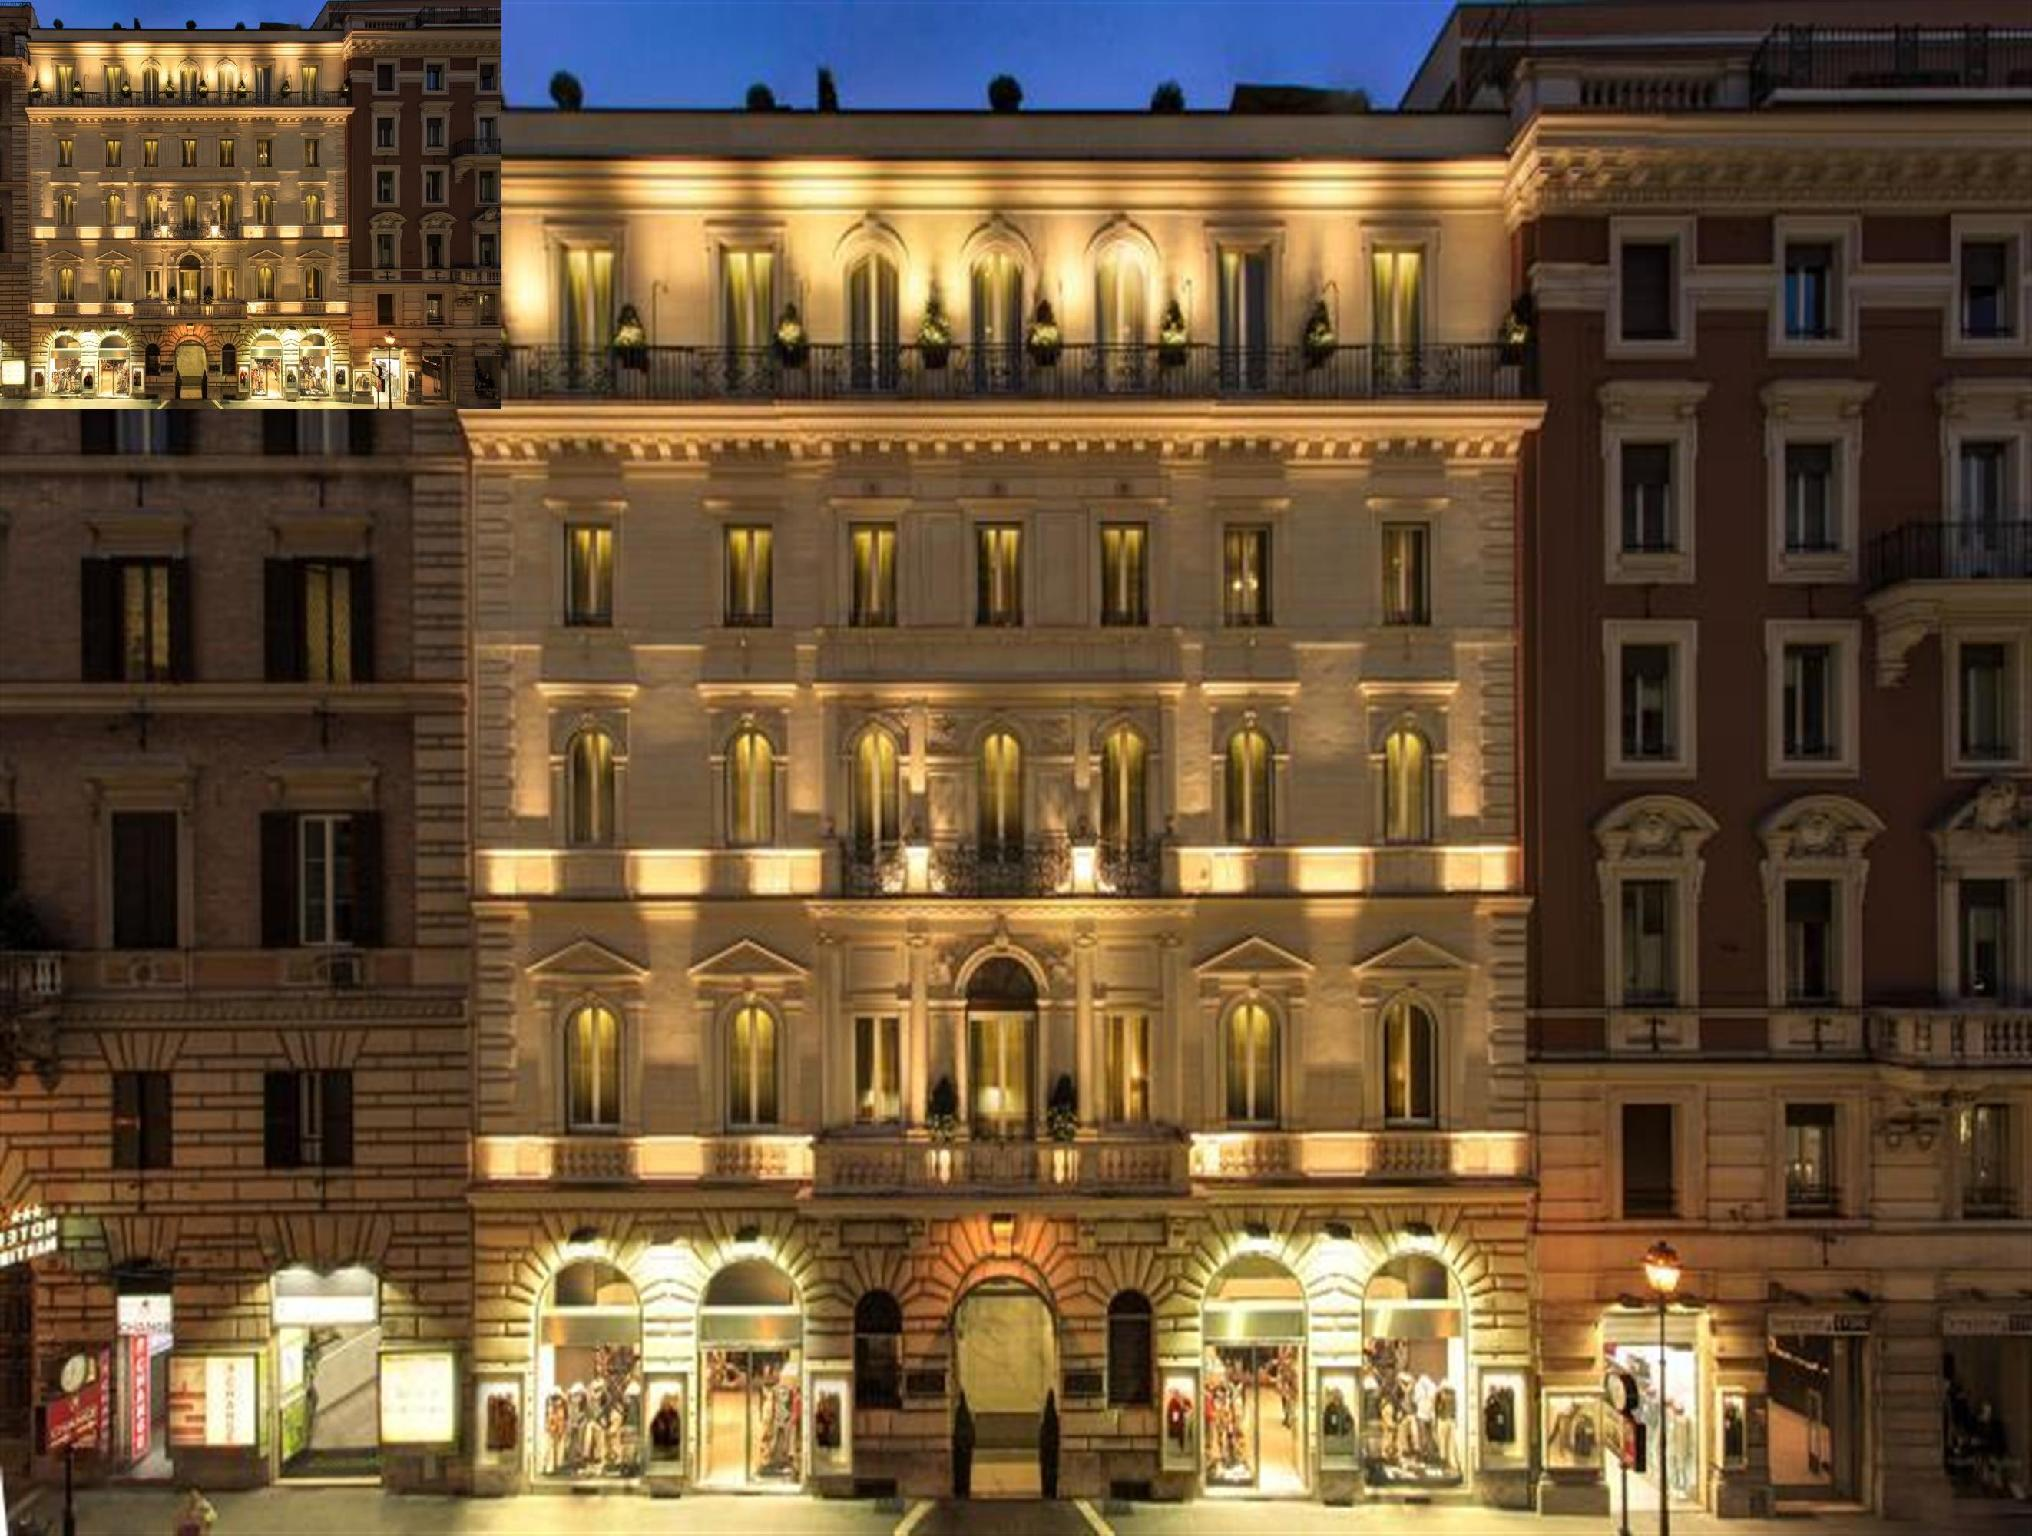 Artemide Hotel - Termini Central Station, Rome, Italy ...